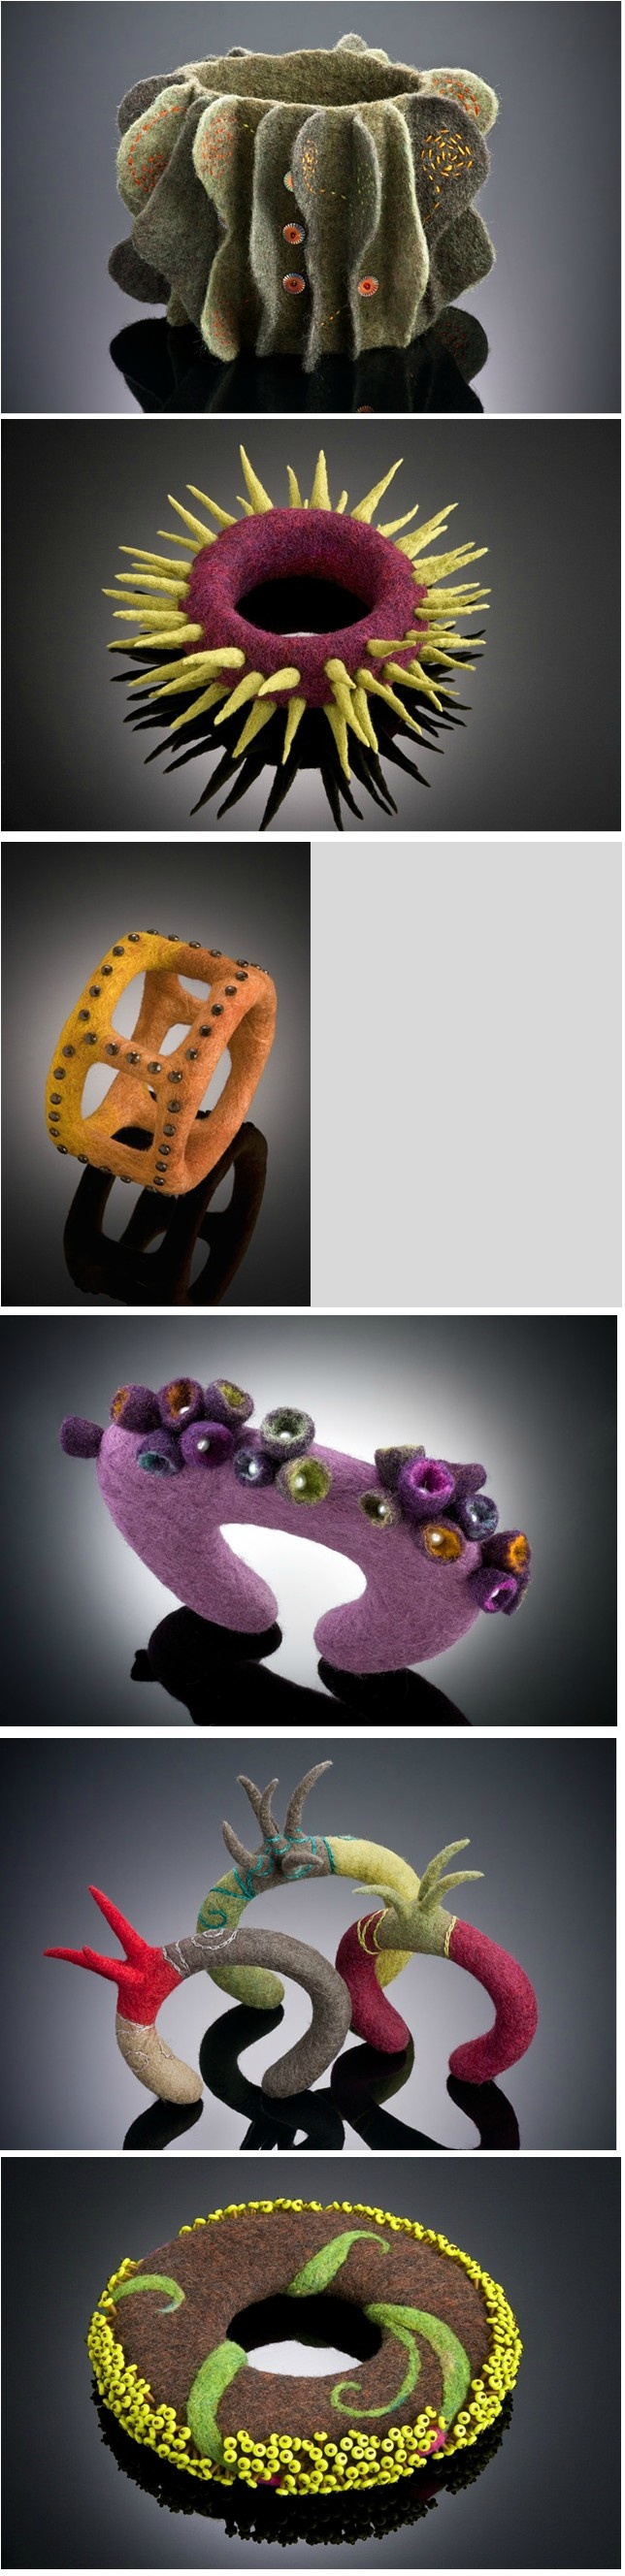 Felt jewelry by Shelley Jones